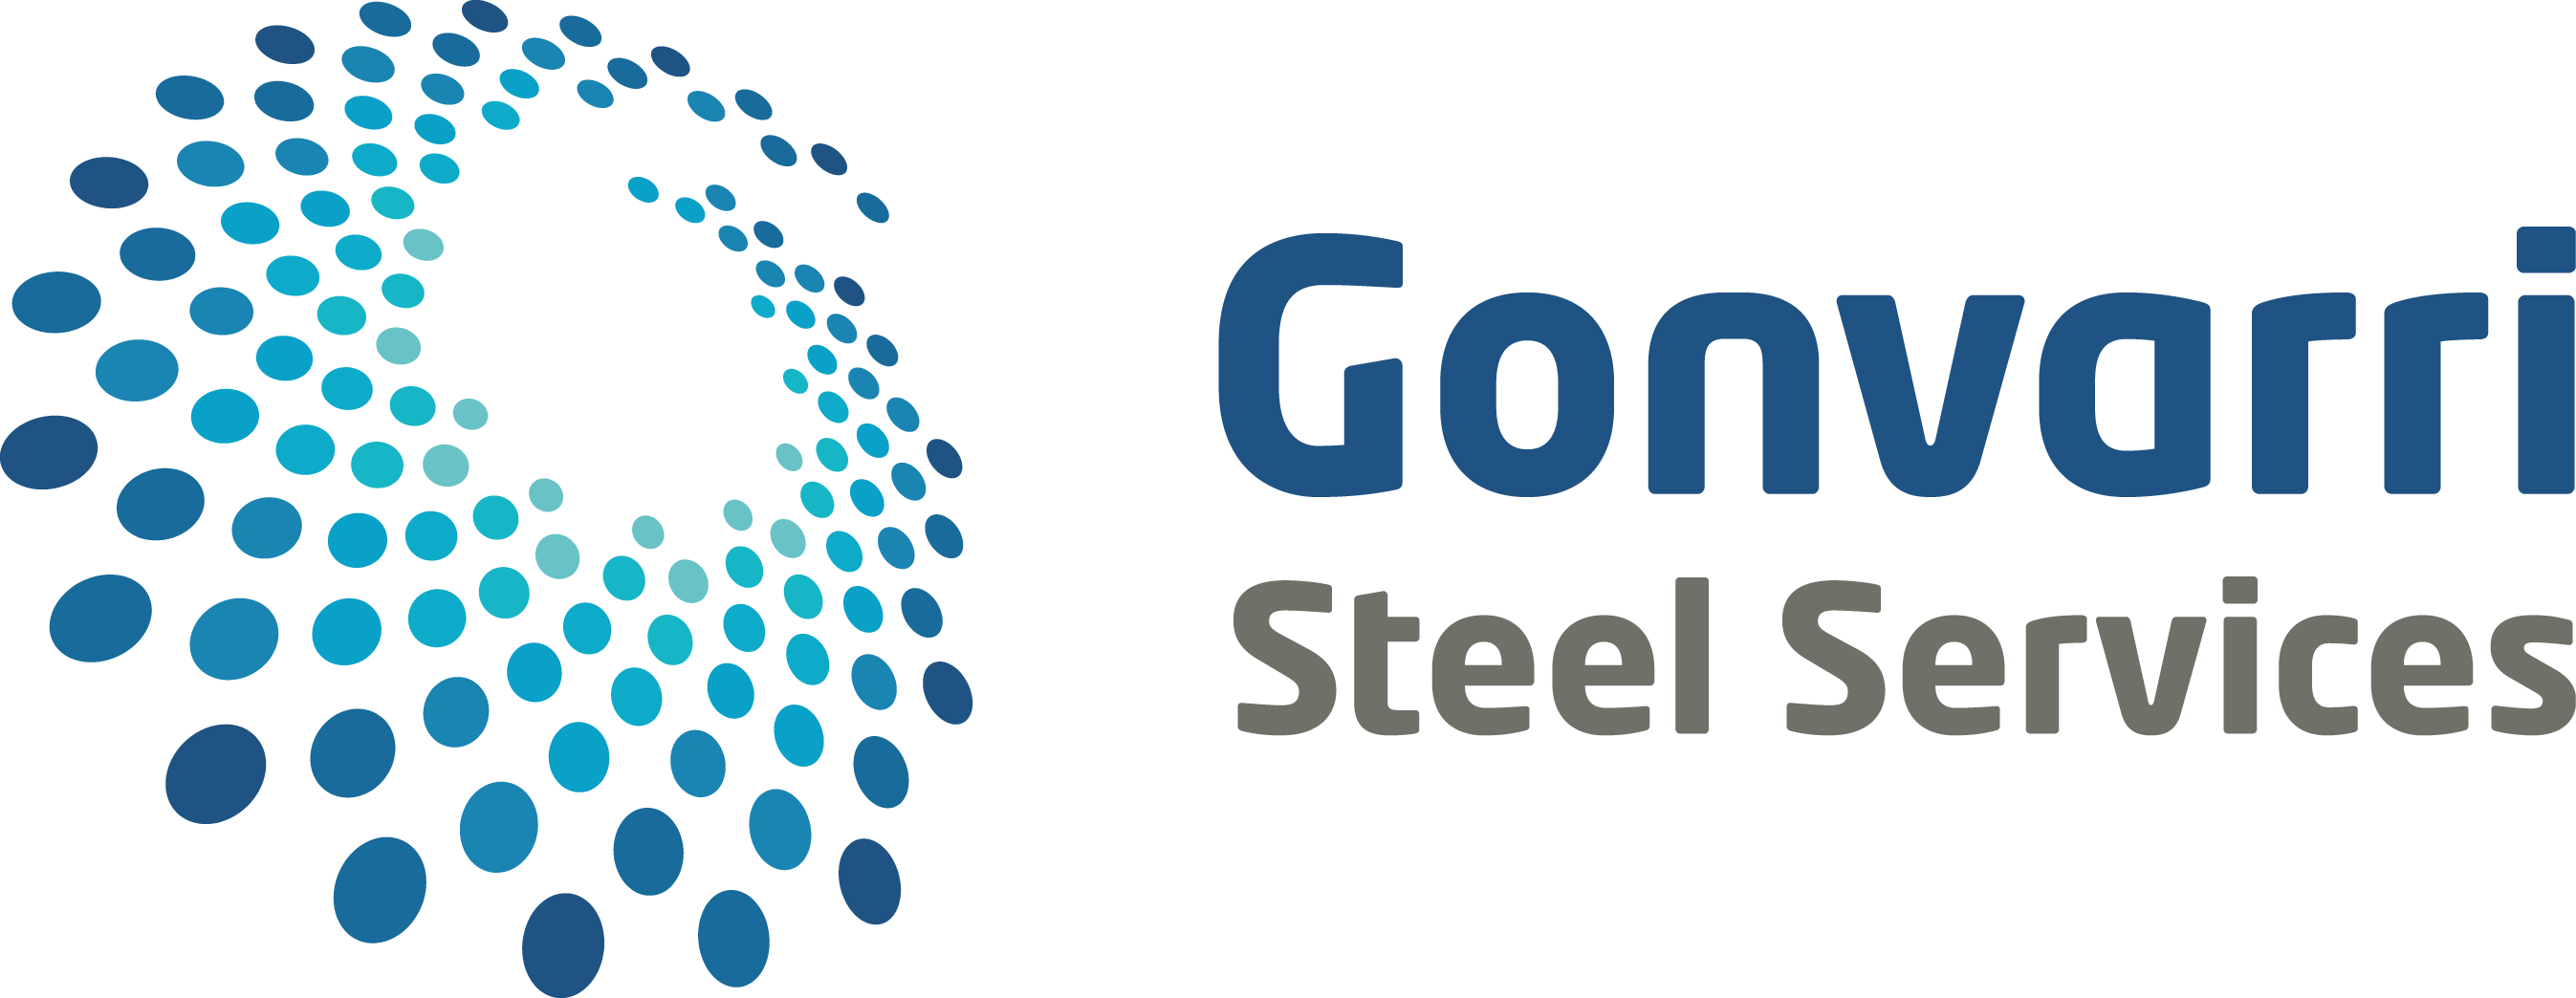 logo_GONVARRI_STEEL_SERVICES COLOR